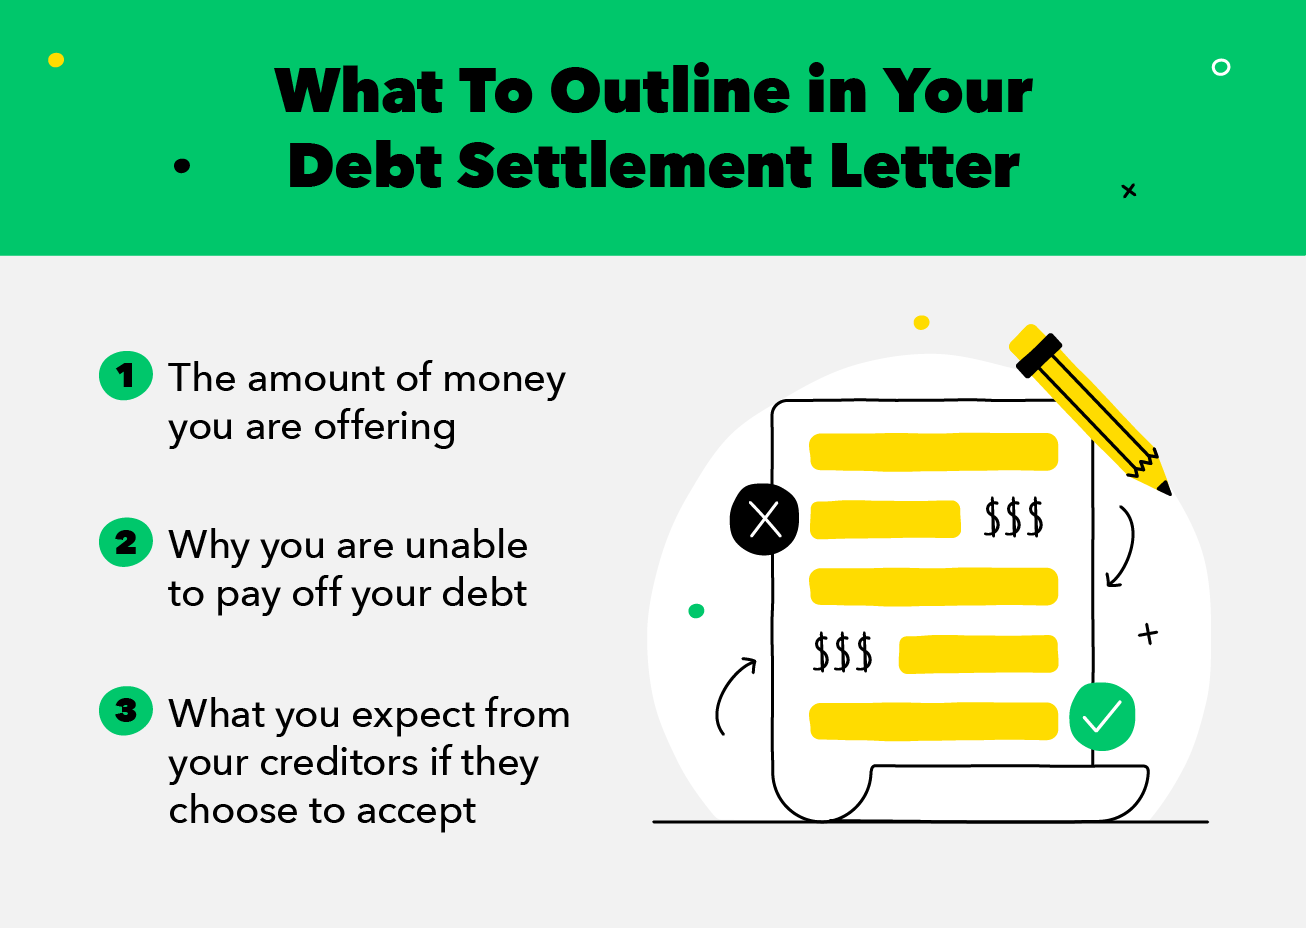 What To Outline in Your Debt Settlement Letter